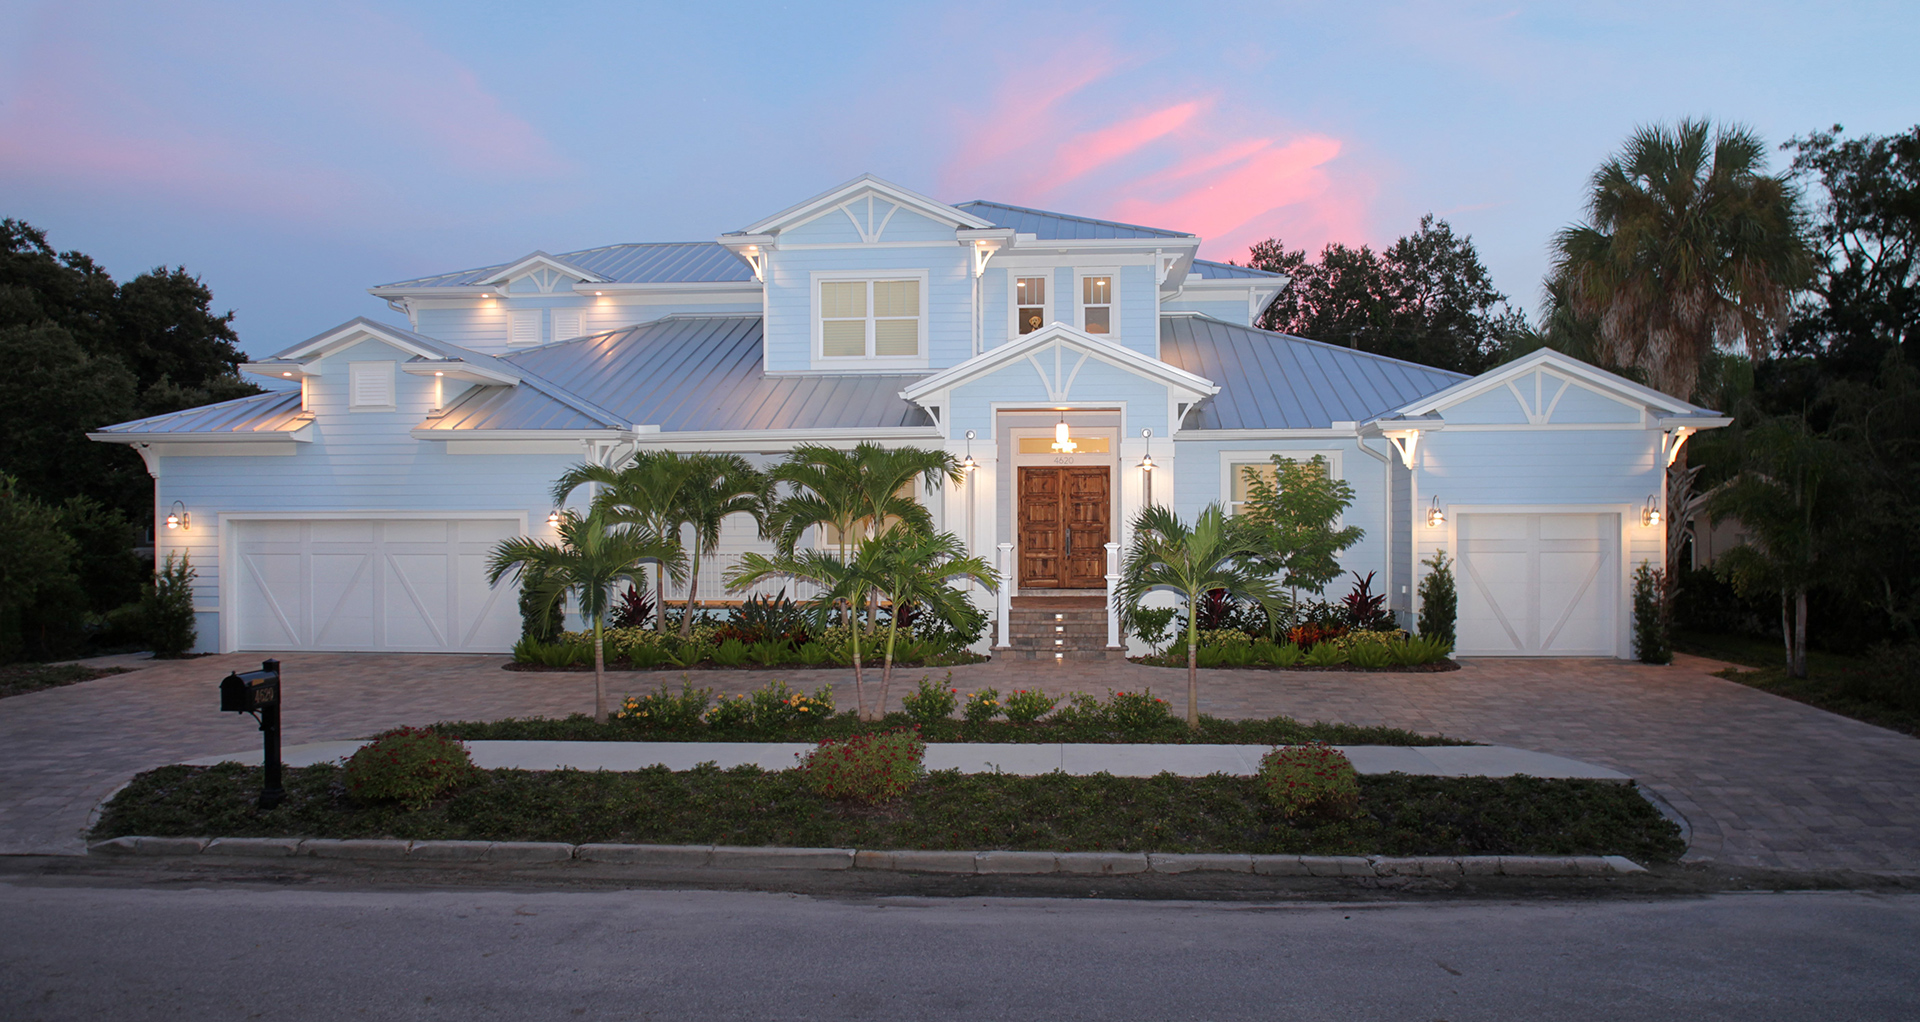 TAMPA BAY'S CUSTOM HOME BUILDERS